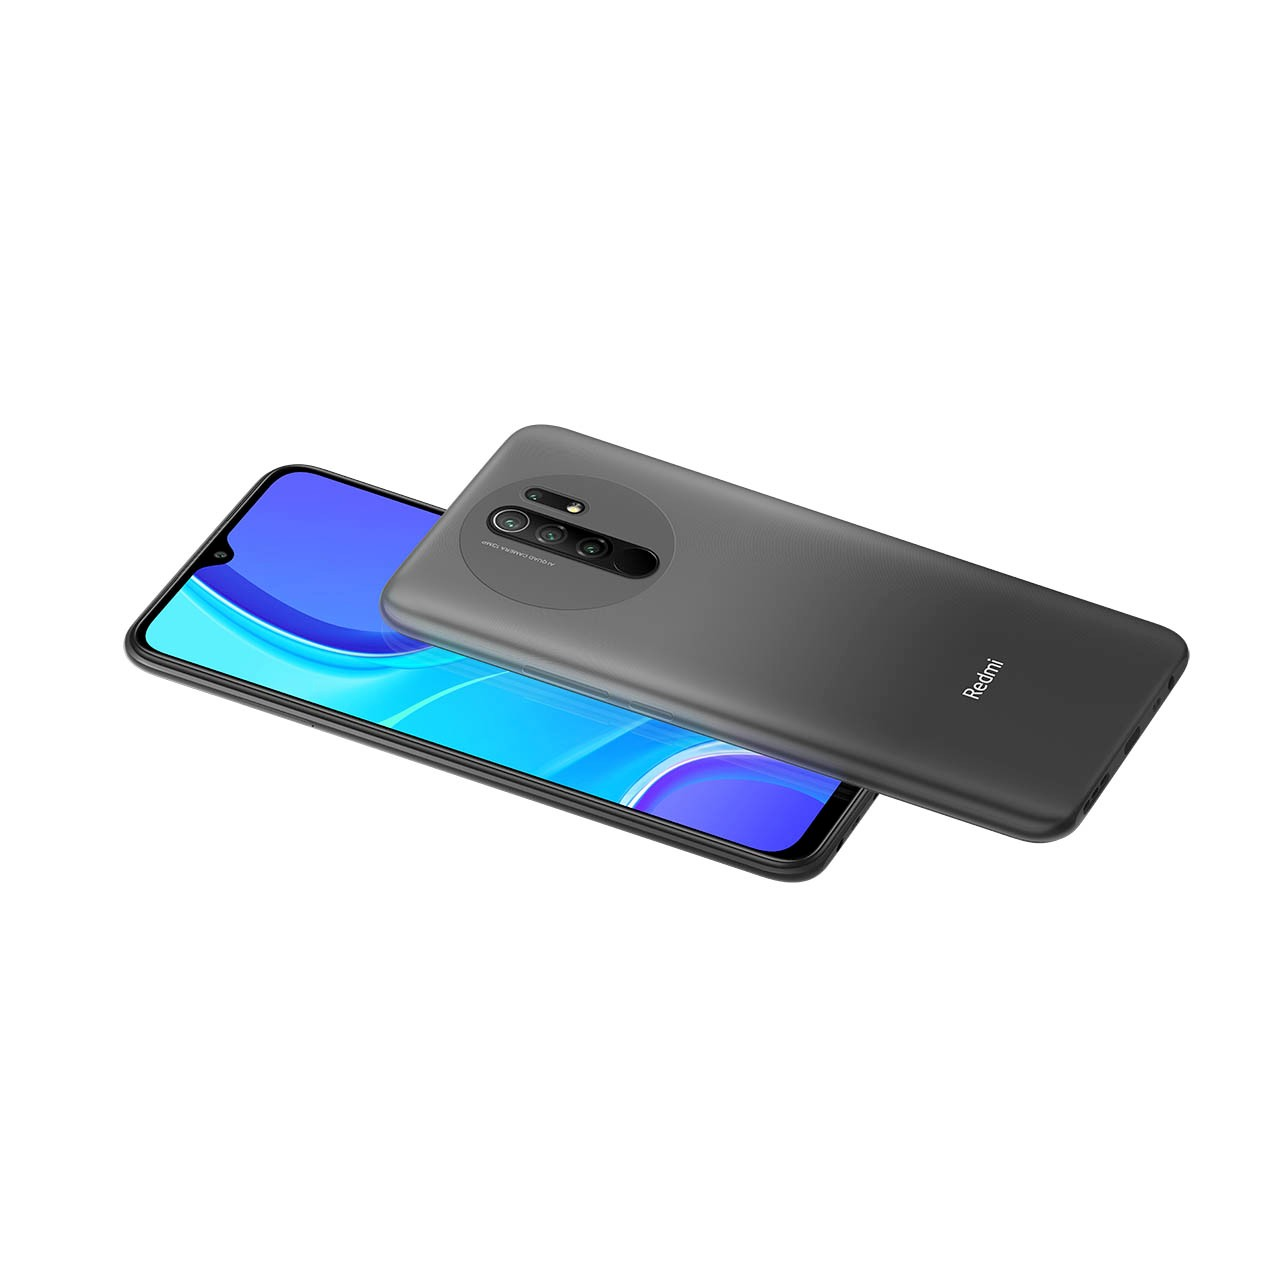 Image of Xiaomi Redmi 9 3GB/32GB Dual Sim - Carbon Grey